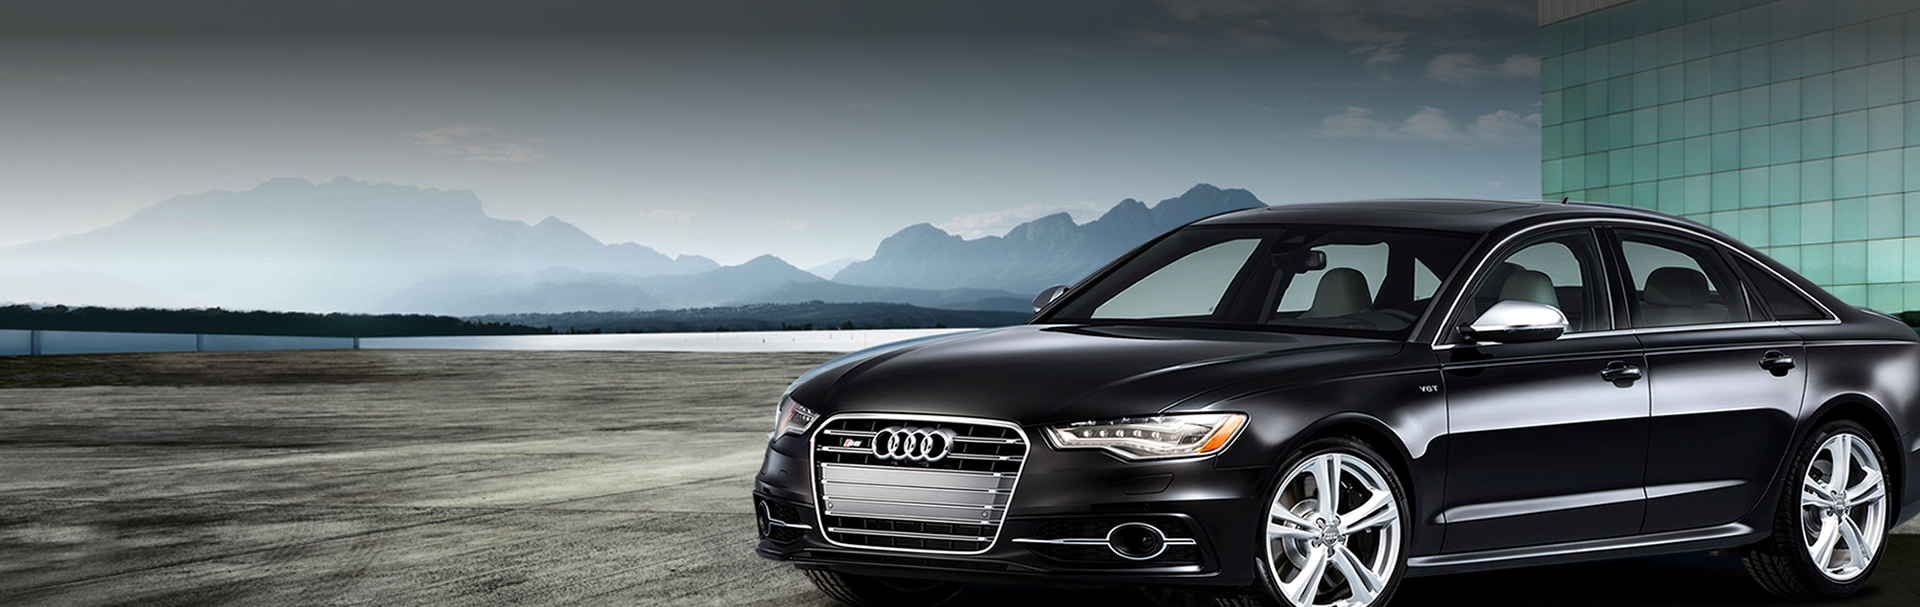 Audi car repair and service in dandenong